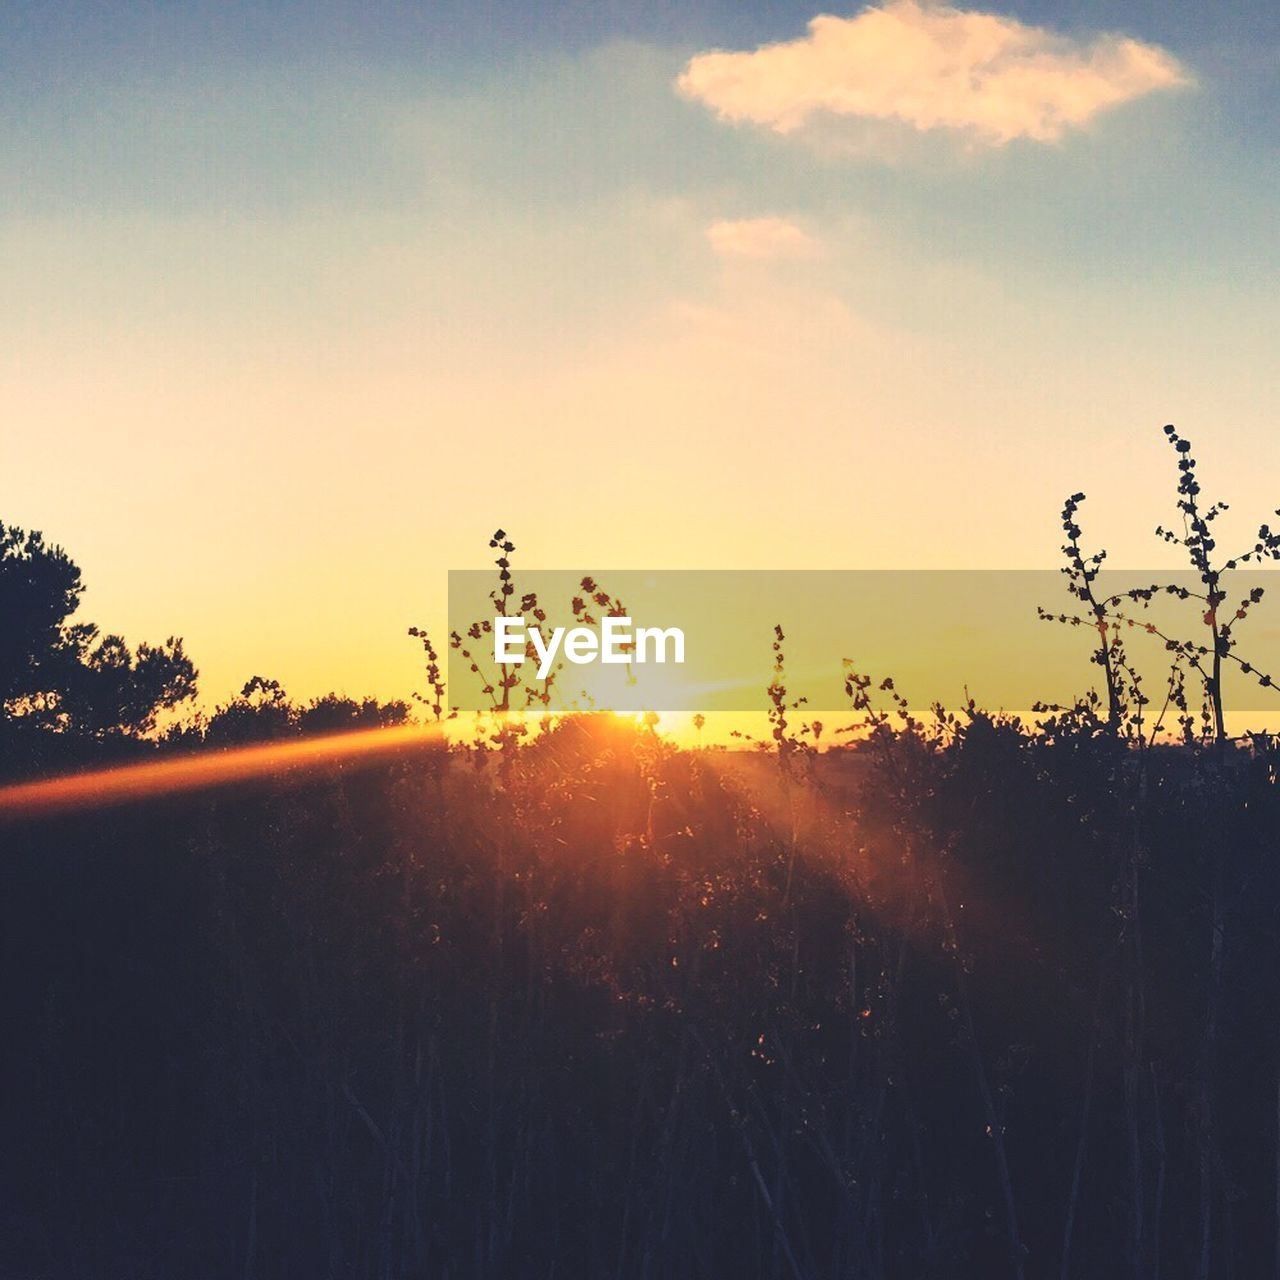 sunset, nature, silhouette, sun, tree, growth, sunlight, no people, sky, landscape, outdoors, plant, beauty in nature, scenics, grass, day